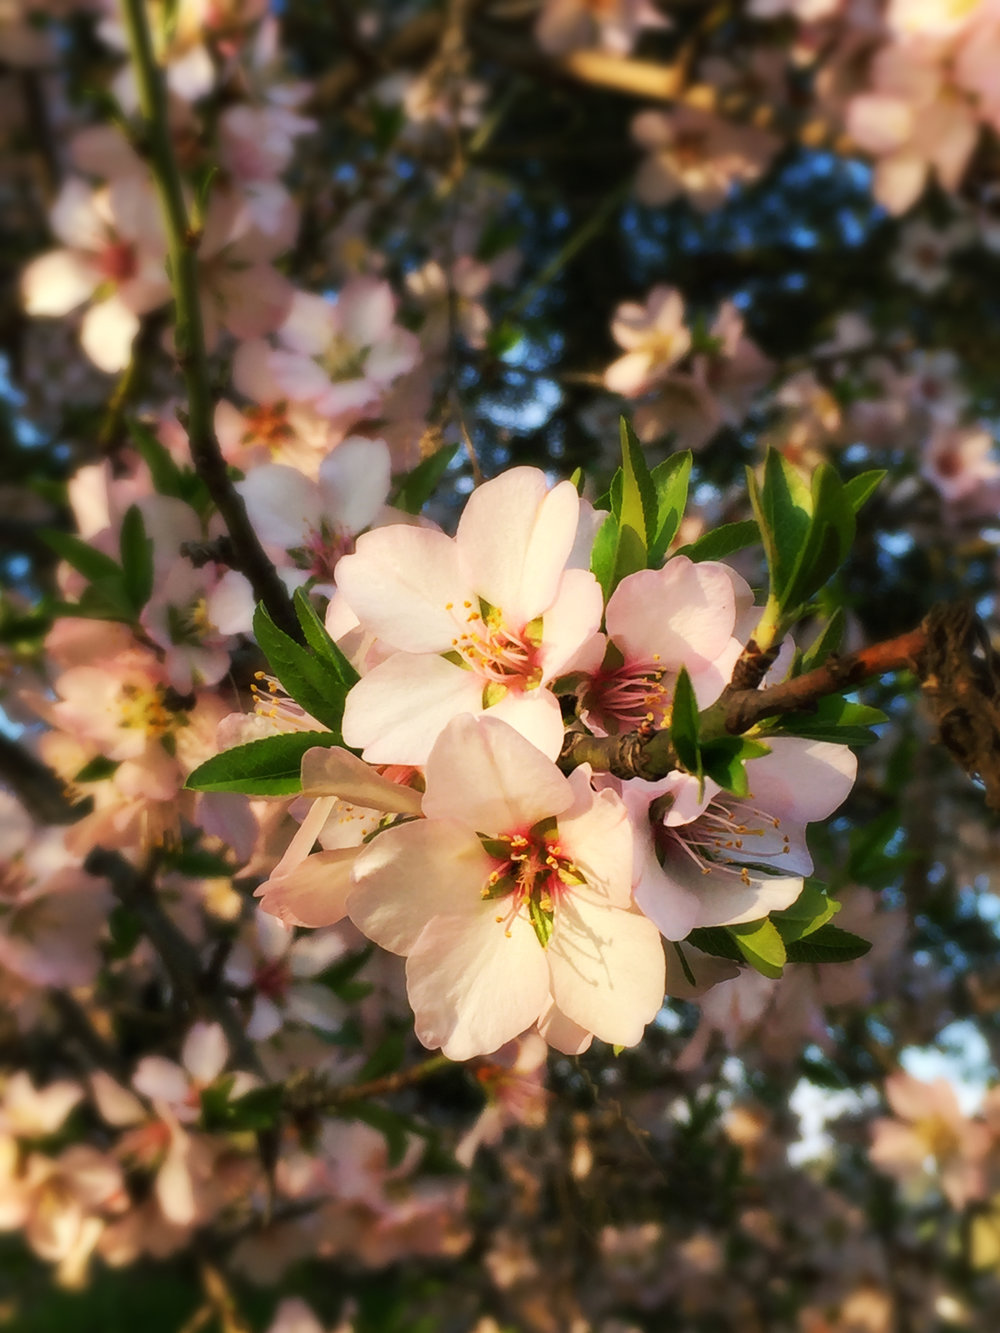 Almond trees are starting to bloom...Spring is on the way!